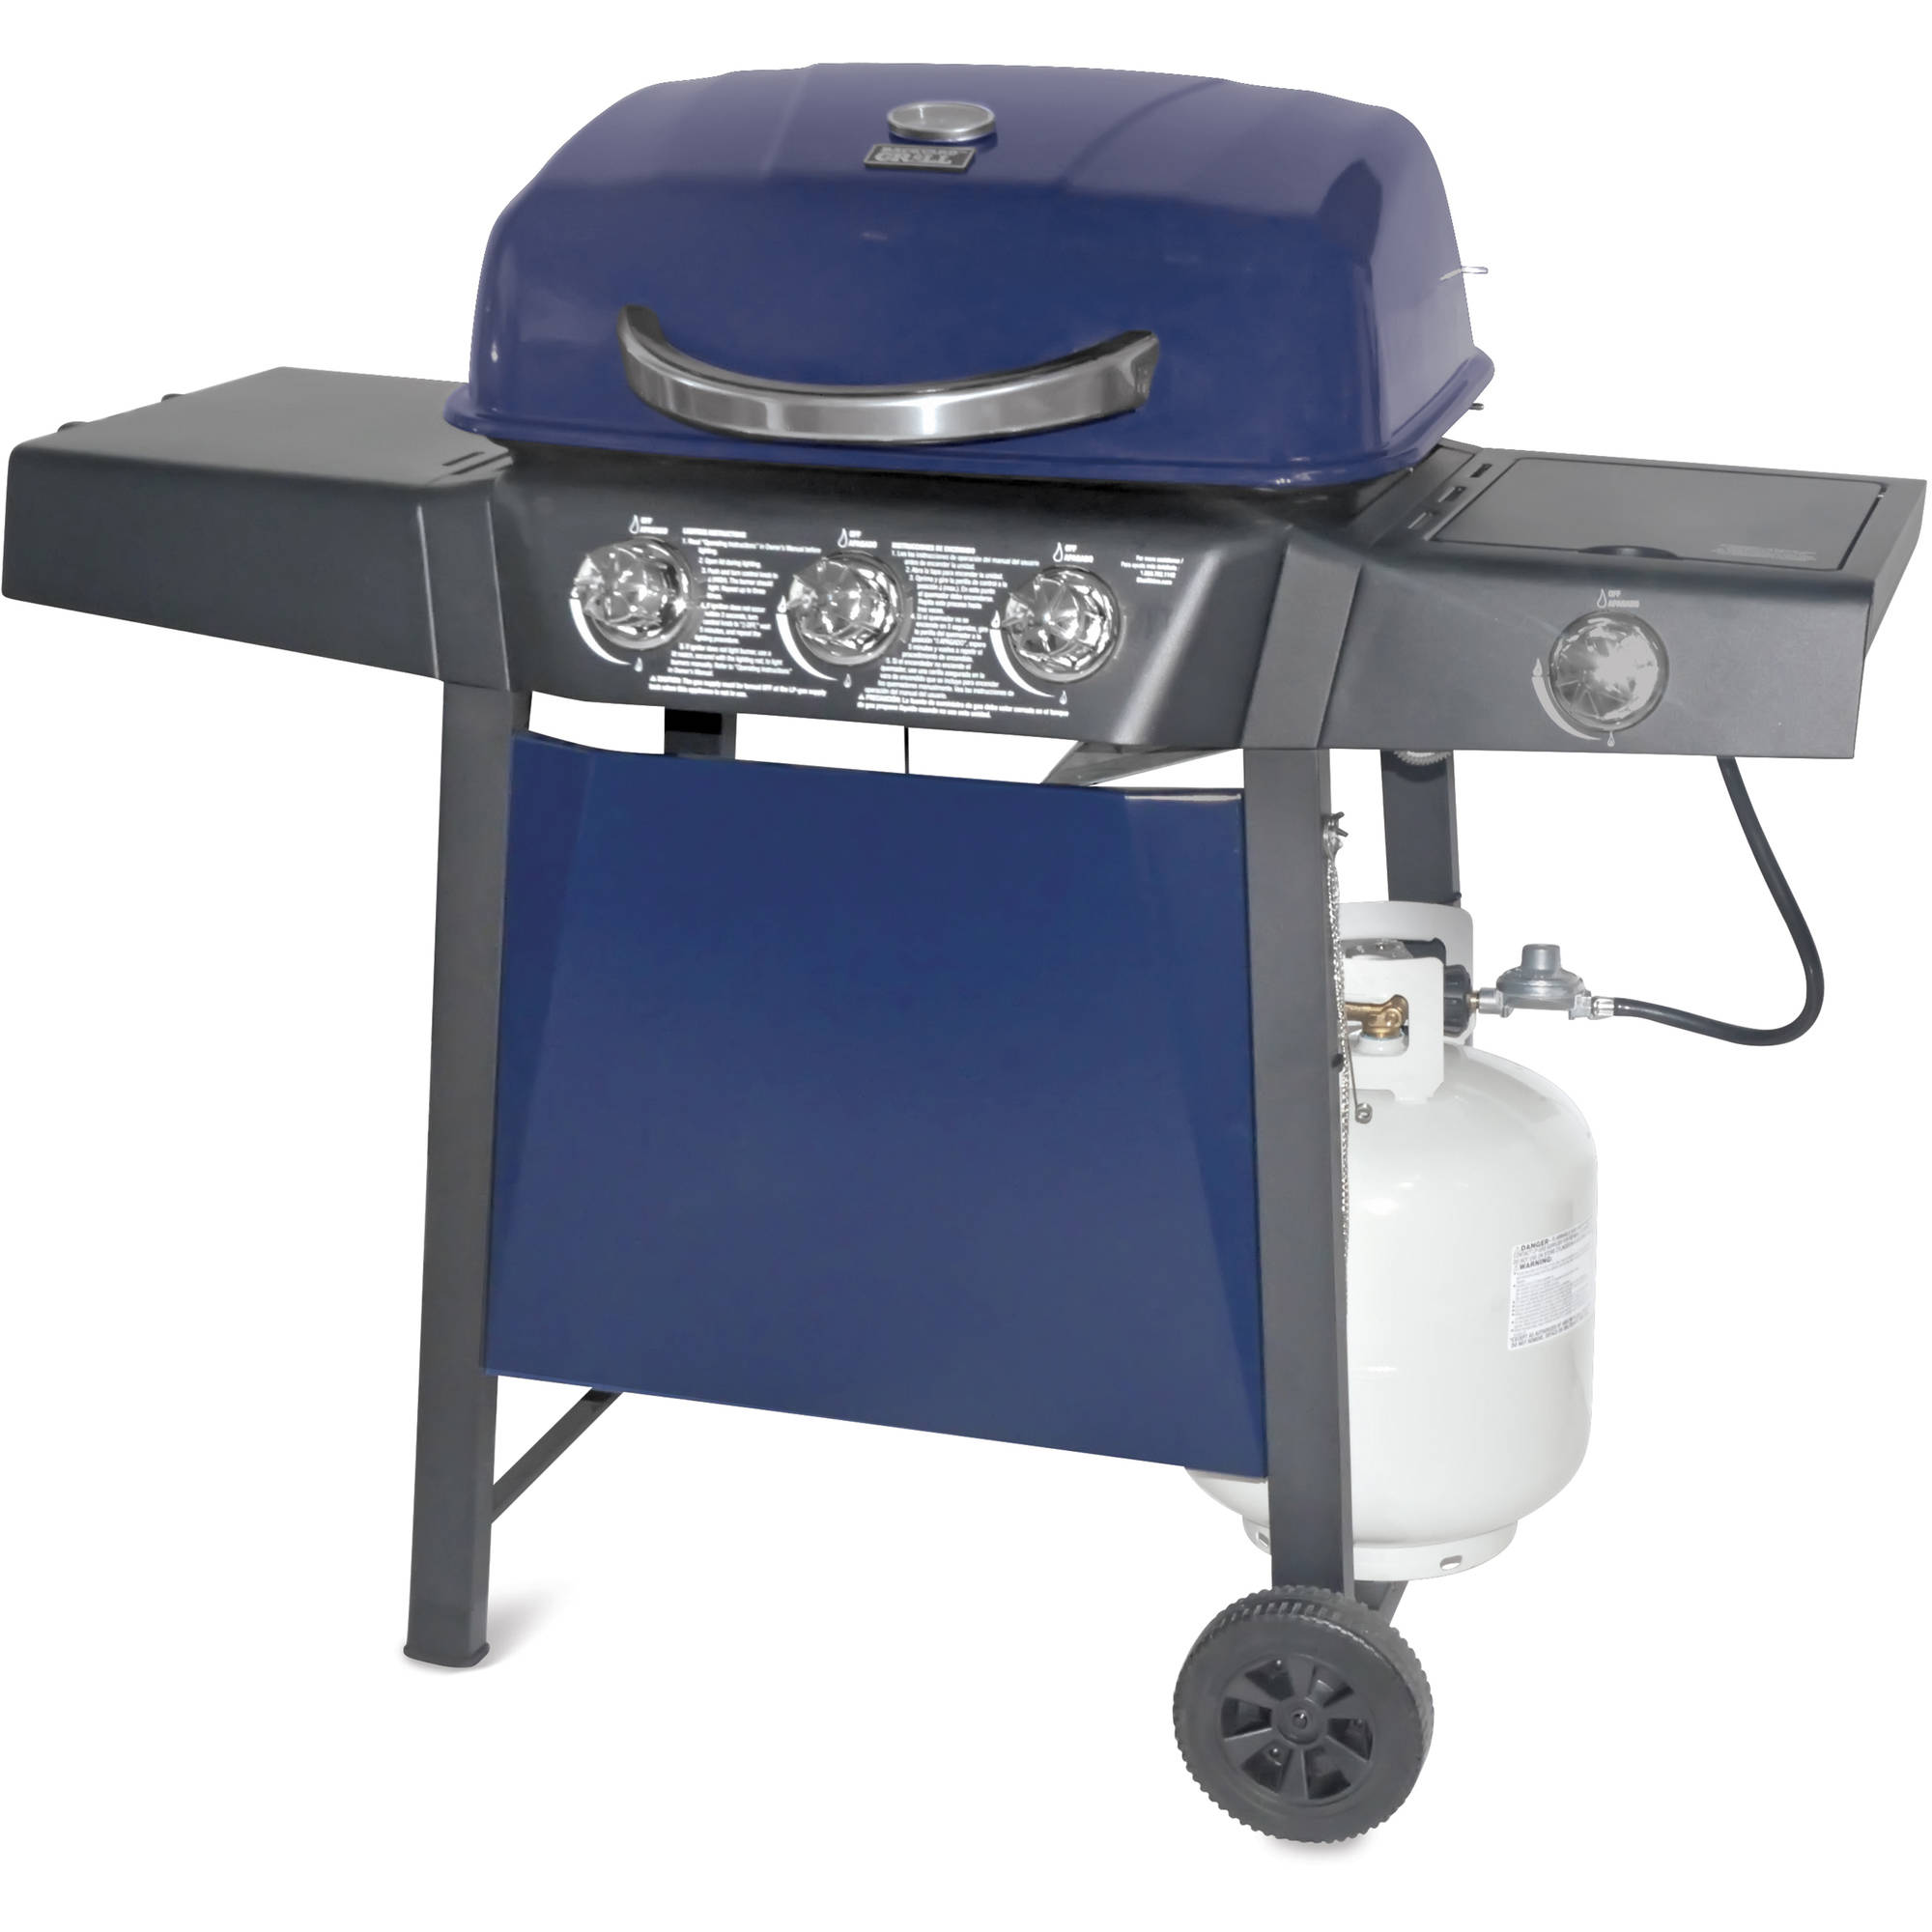 Walmart 3 Burner LP Gas Grill, Blue with Side Burner